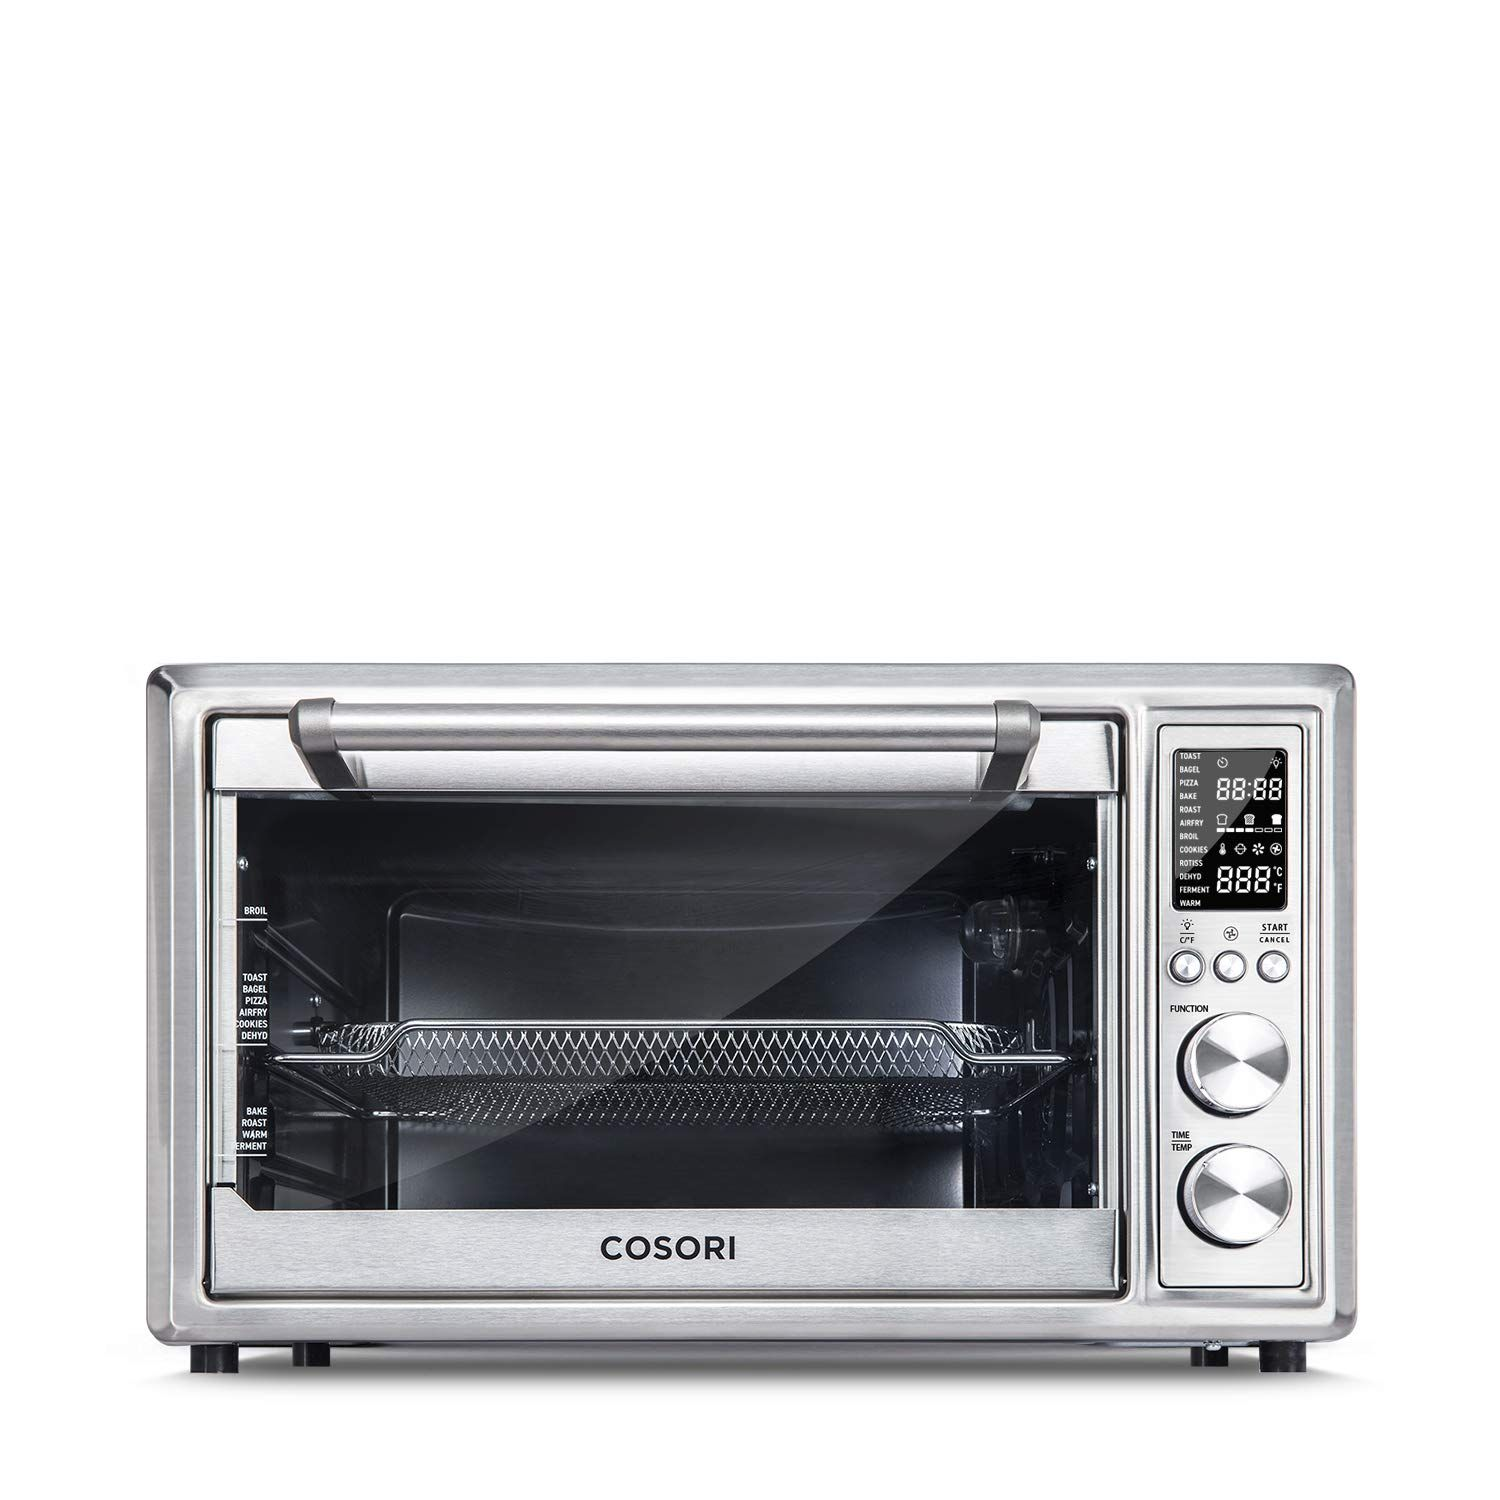 Cosori Co130 Ao Air Fryer Toaster Oven 30l Silver